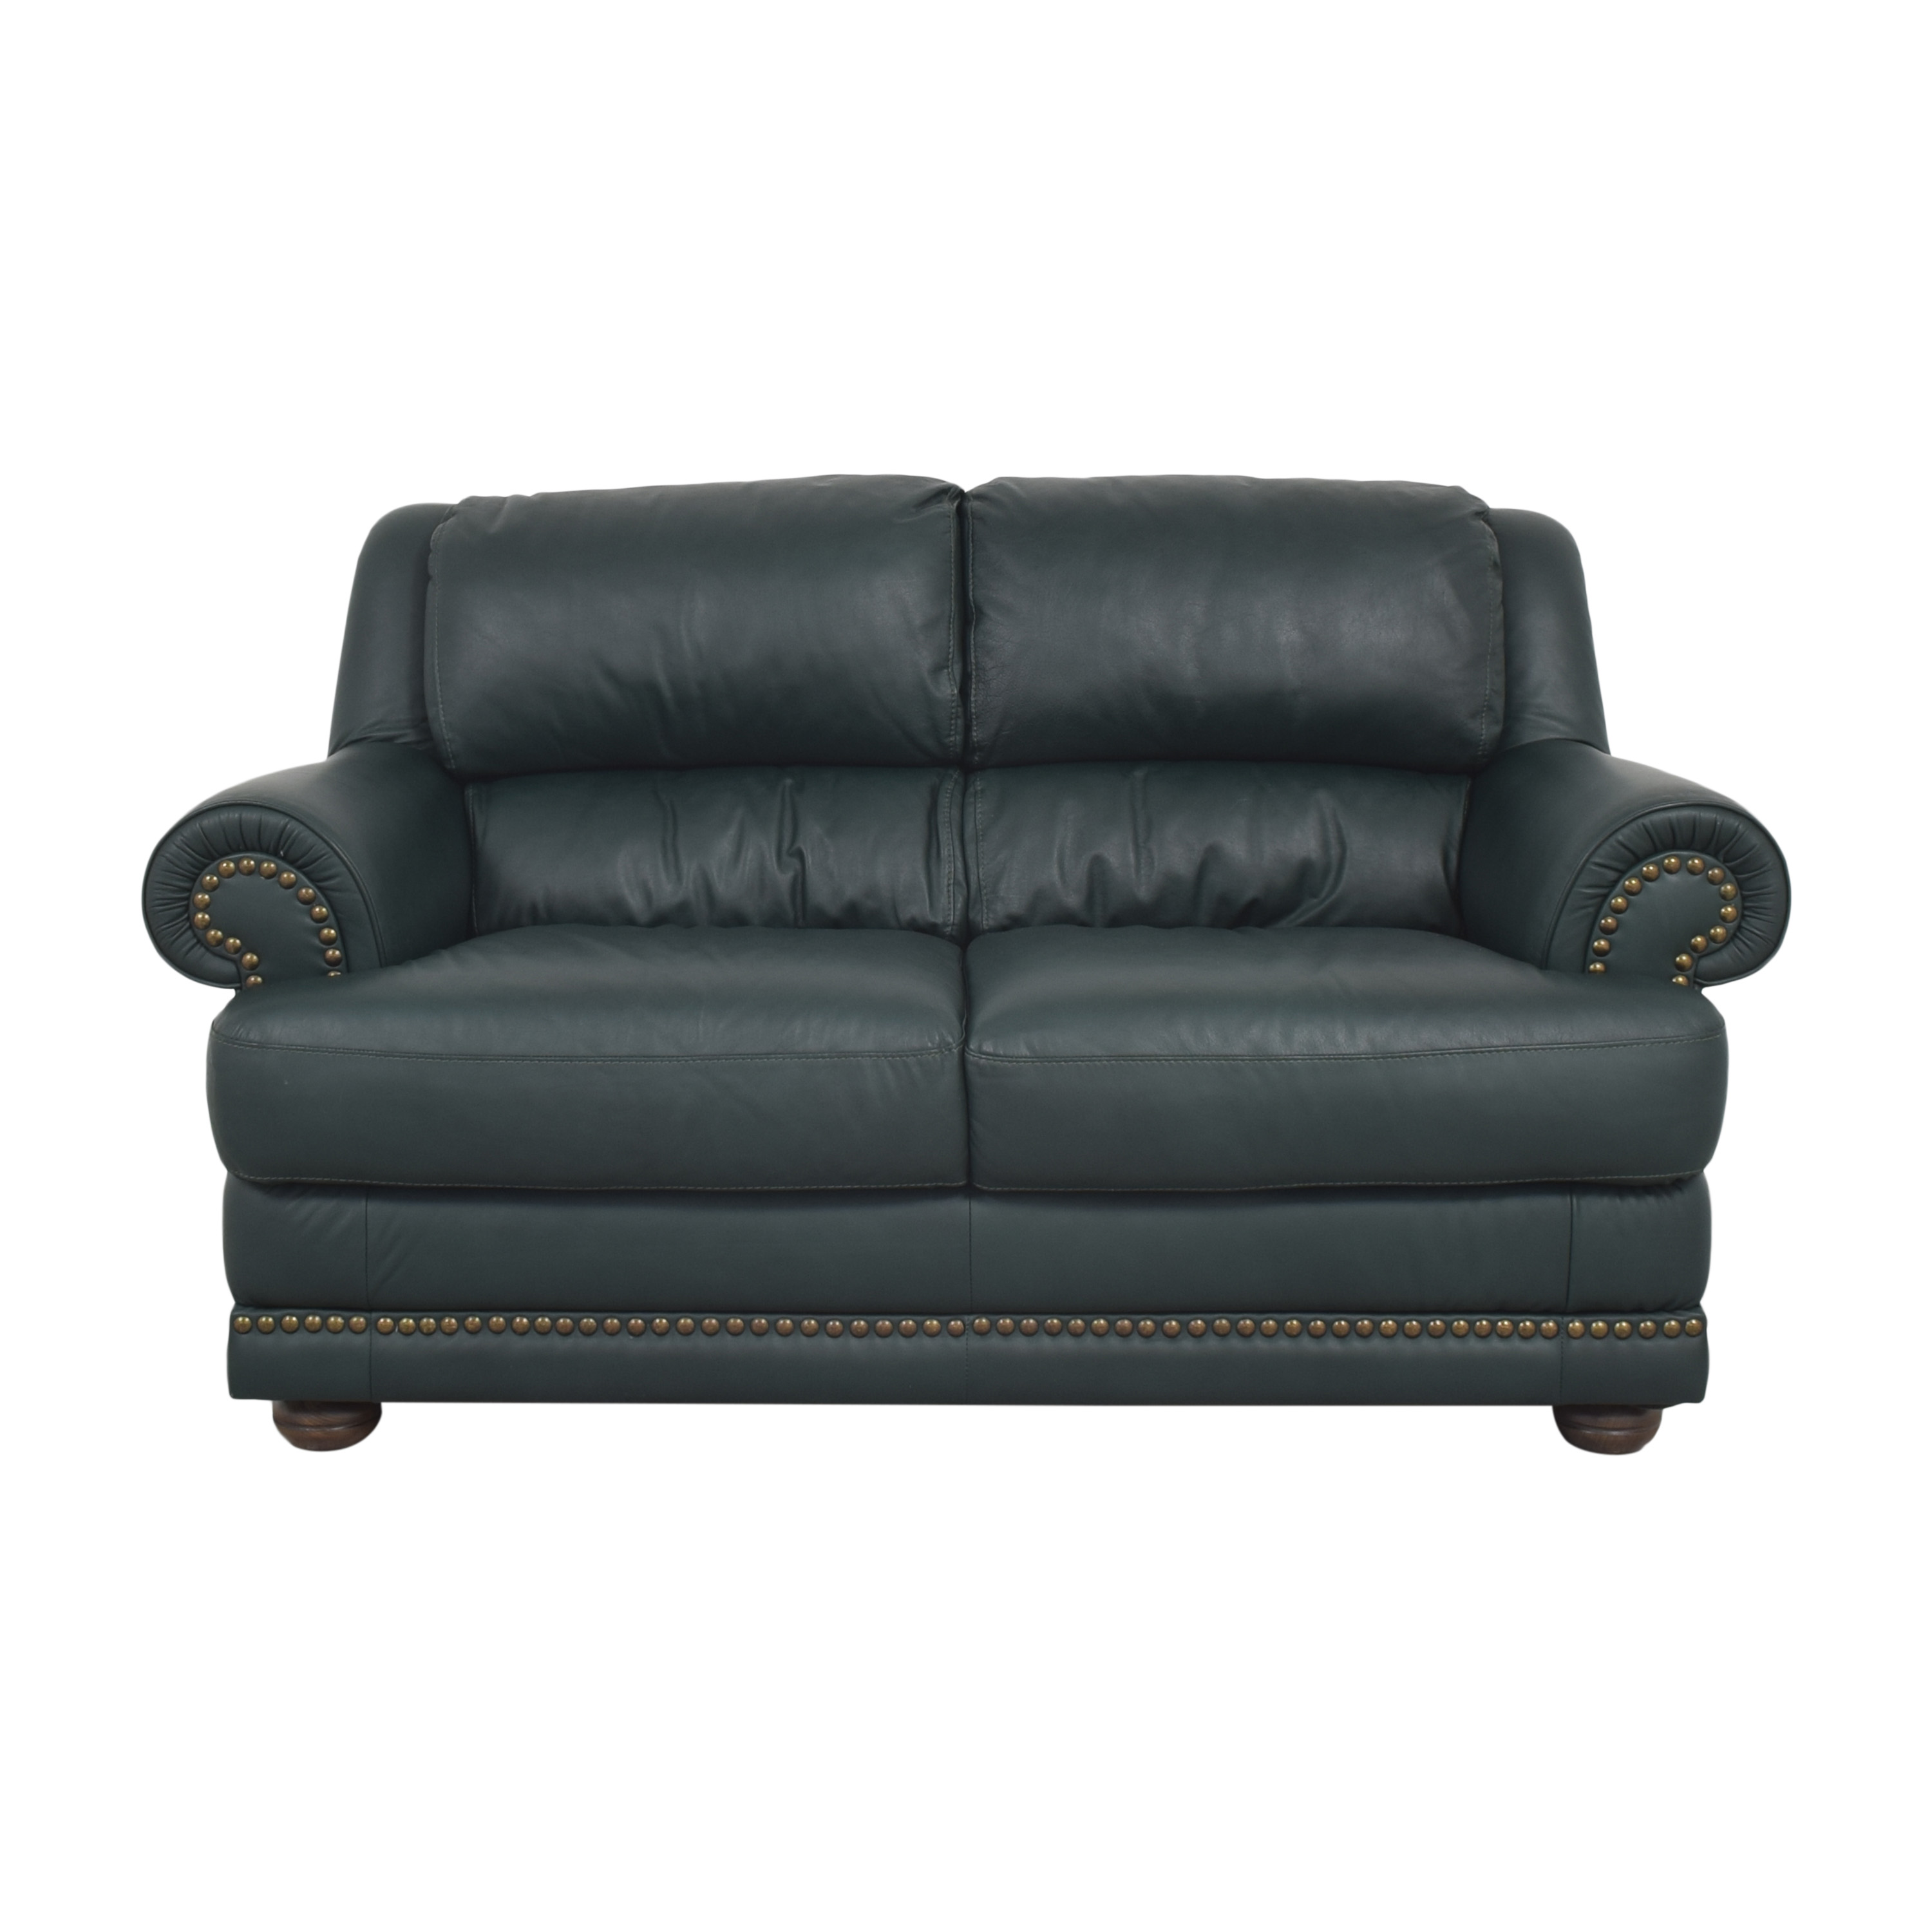 Natuzzi Natuzzi Roll Arm Loveseat for sale